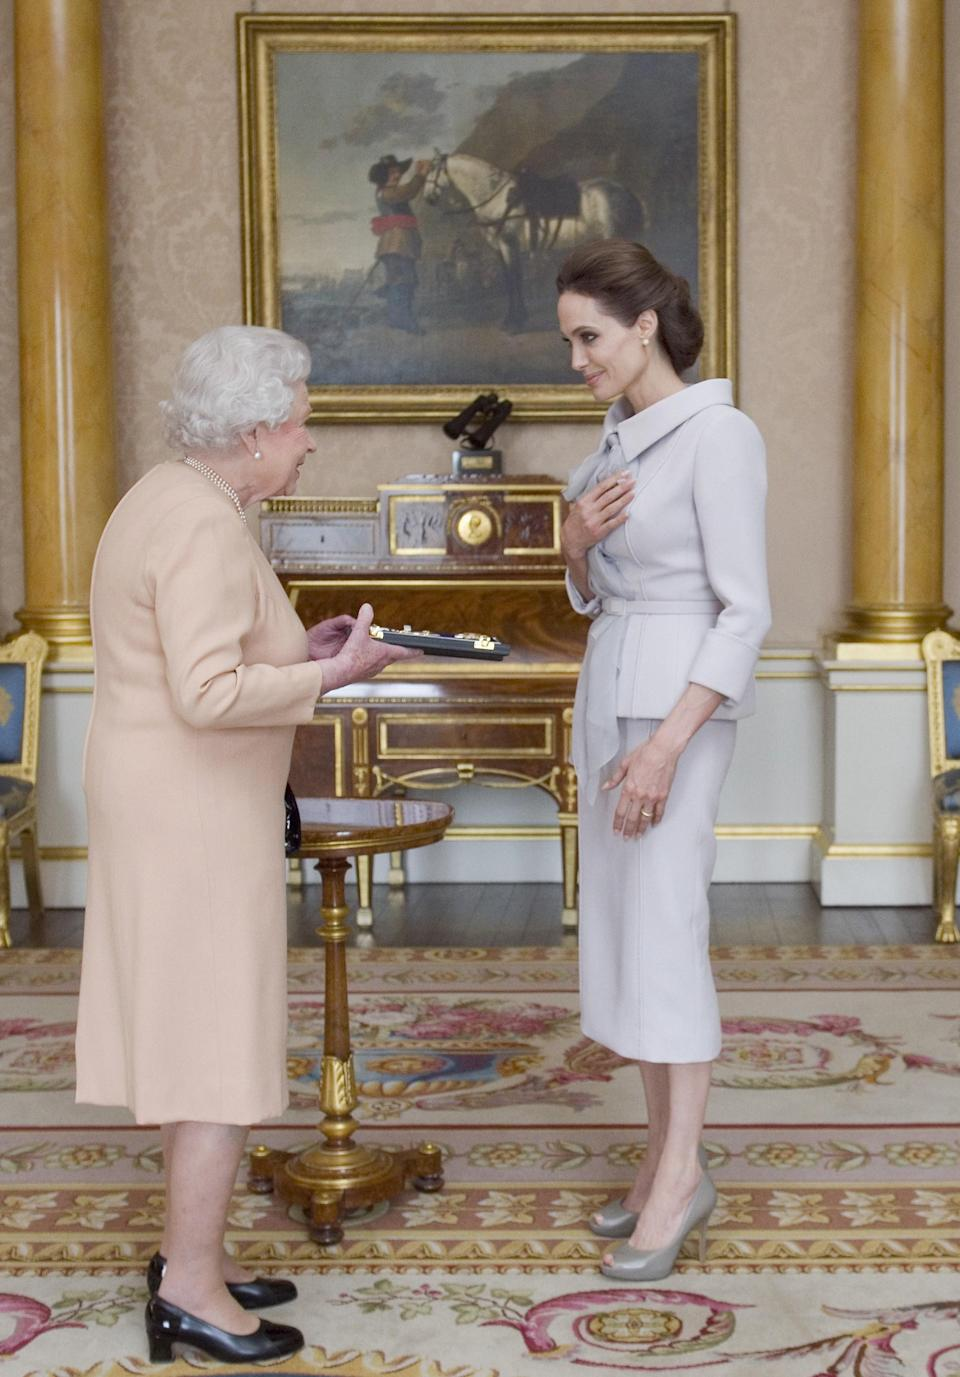 <p>Back in 2014, Angelina Jolie was made an honorary dame by the Queen for her campaign work against sexual violence. For the occasion, she chose a chic Ralph and Russo skirt suit Meghan Markle would approve of finished with matching Salvatore Ferragamo shoes. <em>[Photo: Getty]</em> </p>